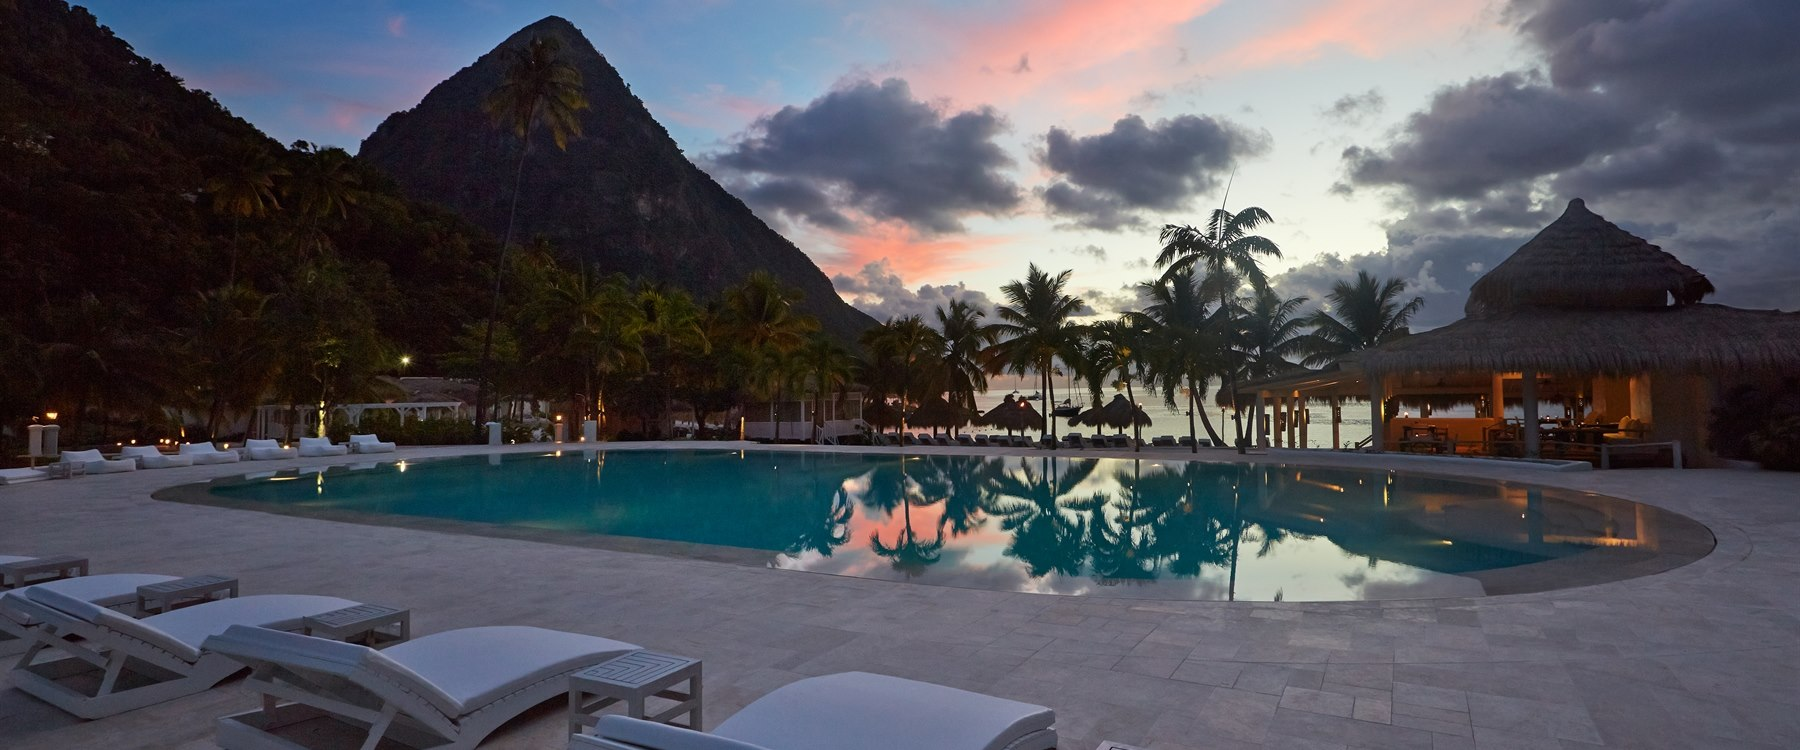 Picturesque pool area in the evening at Sugar Beach, A Viceroy Resort